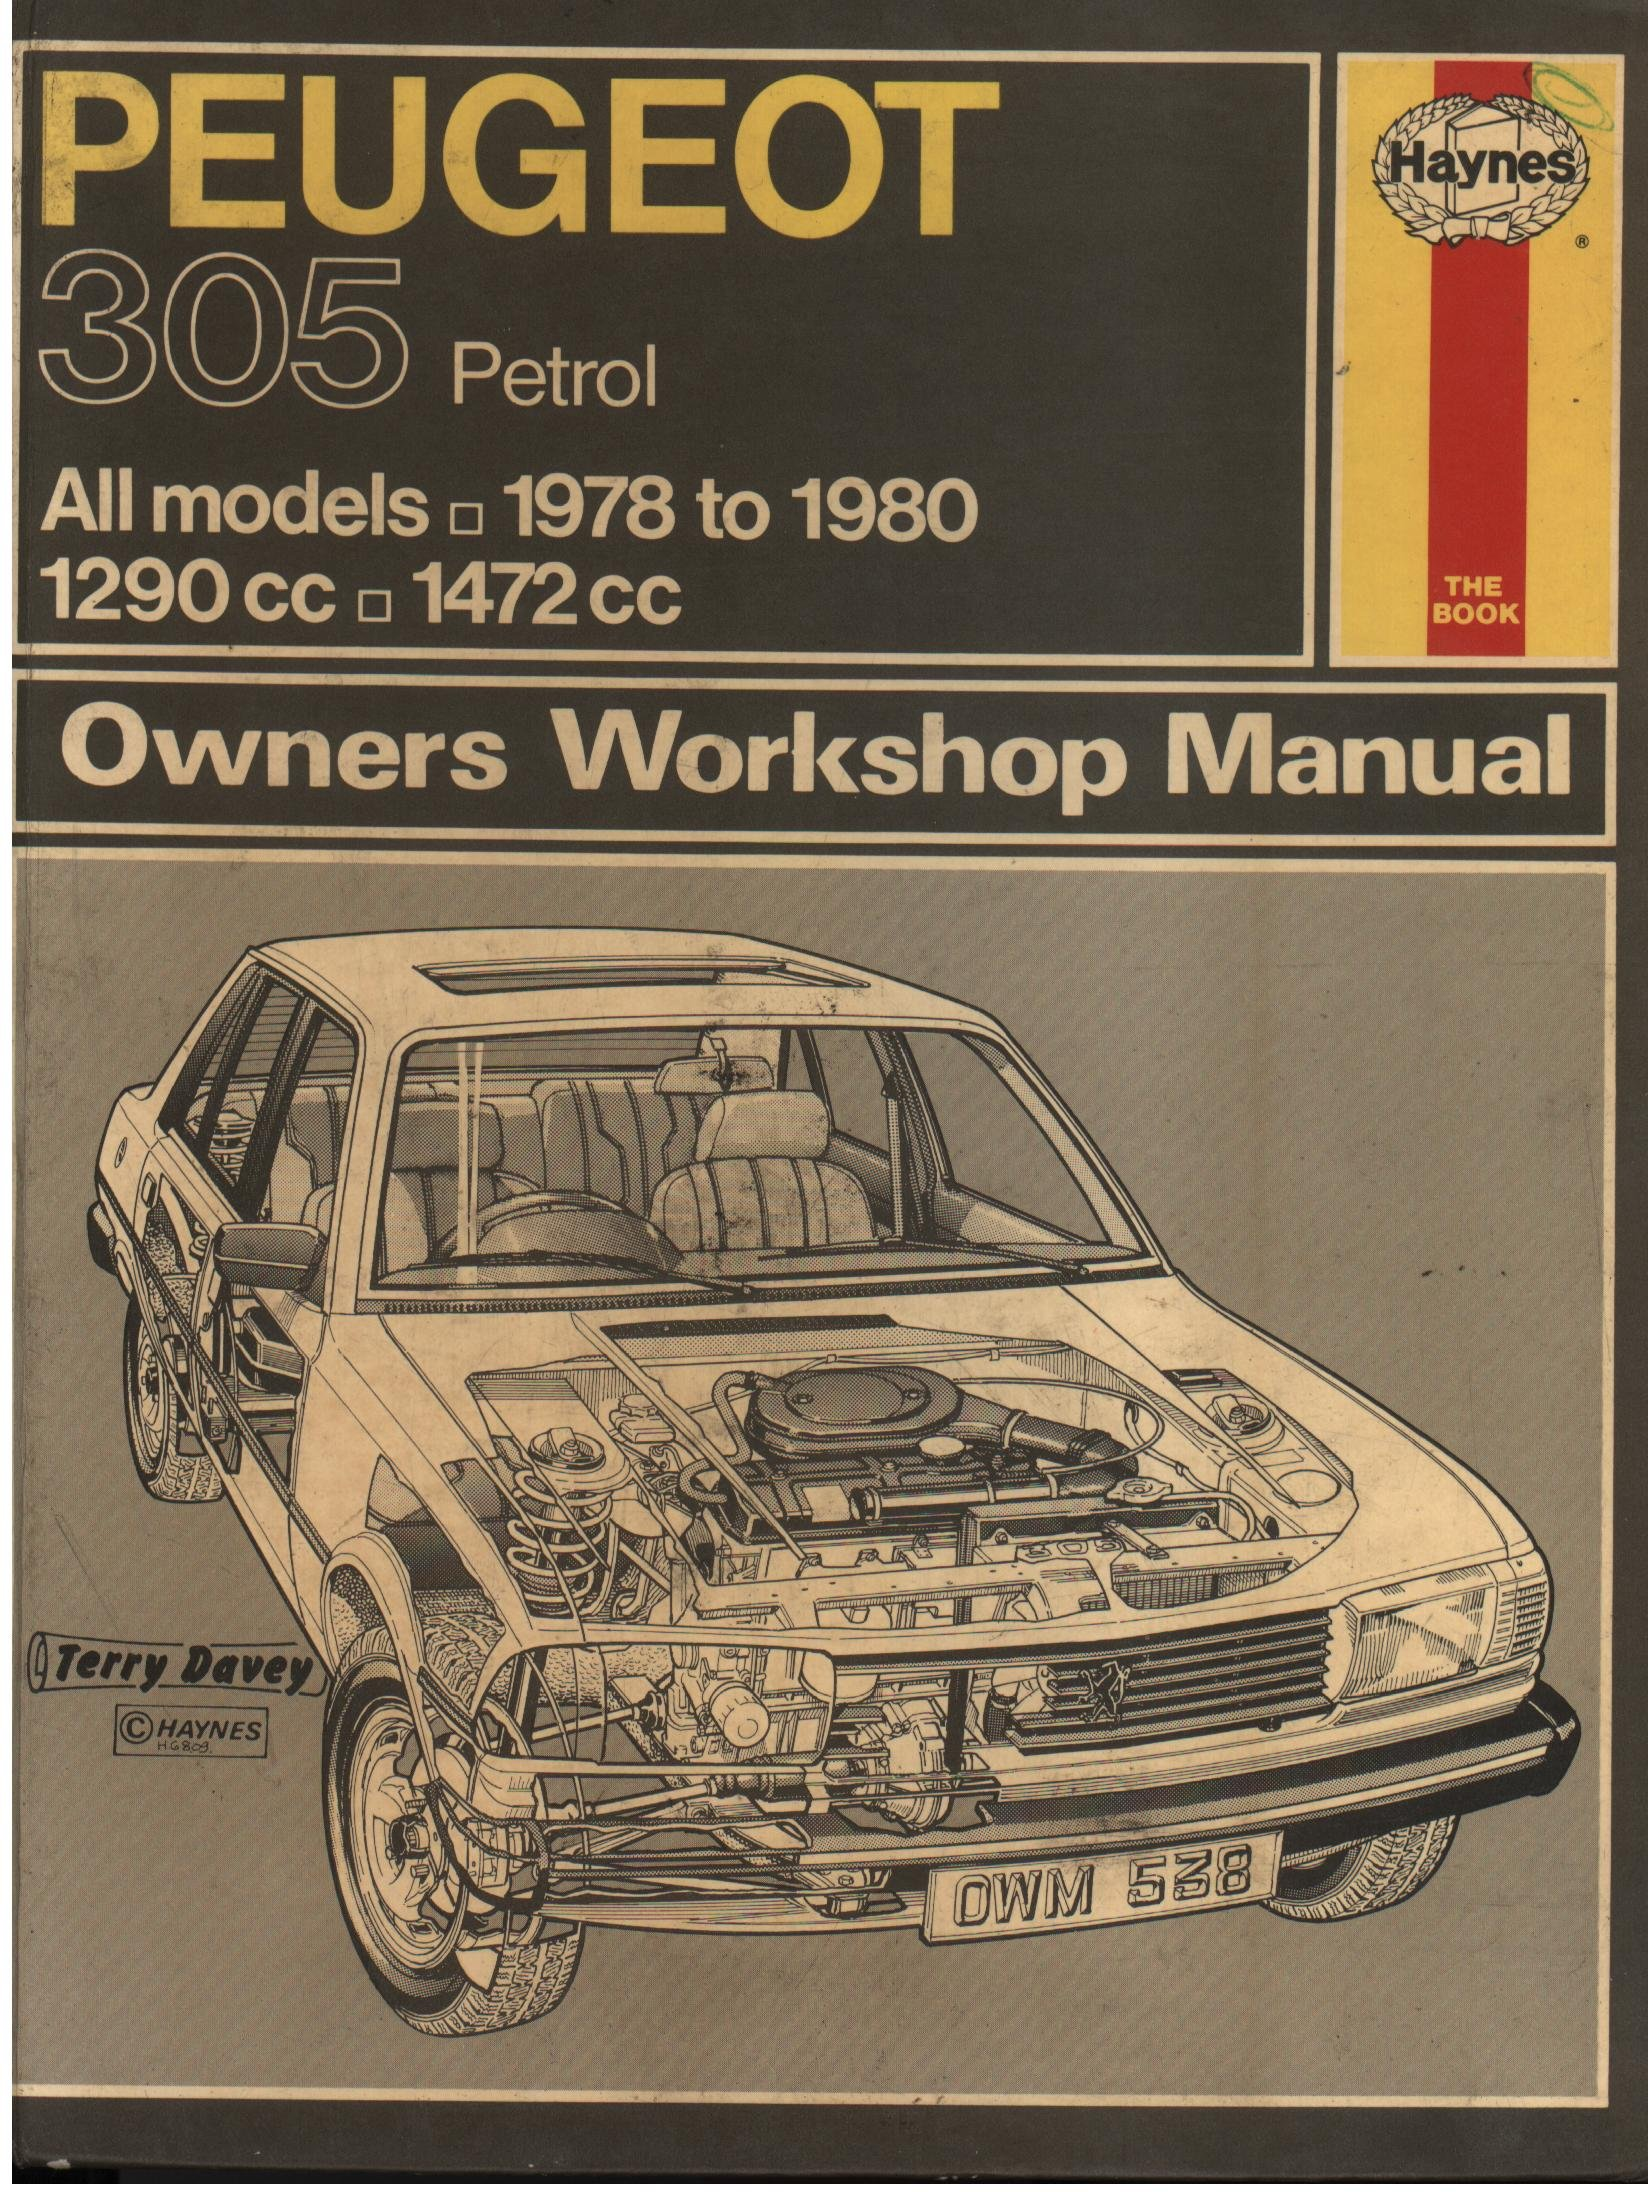 Peugeot 305 Owner's Workshop Manual: Ronald G.O. Hawes: 9780856965388:  Books - Amazon.ca